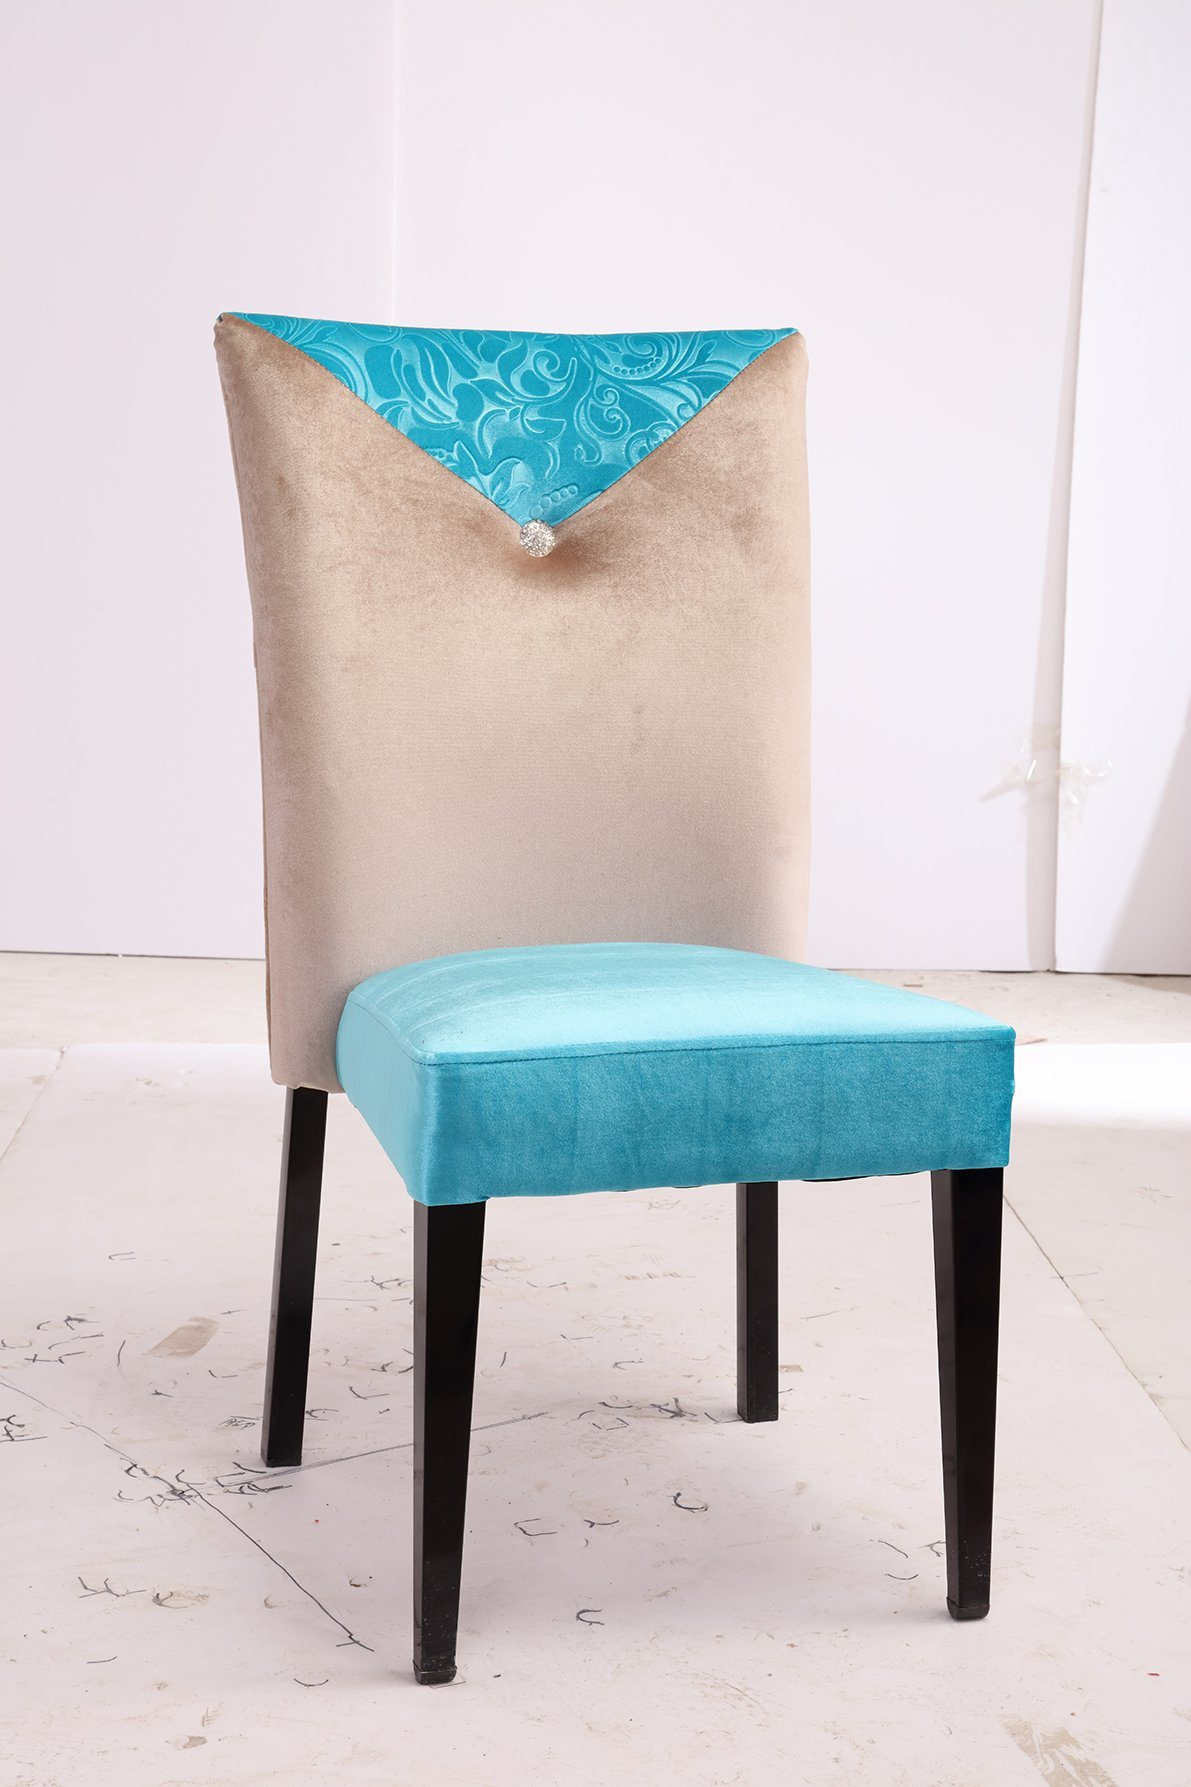 Tiffany Blue Chair Hot Item Modern High Back And Tiffany Blue Lint Fabric Covered Dining Chair For Hotel Restaurant